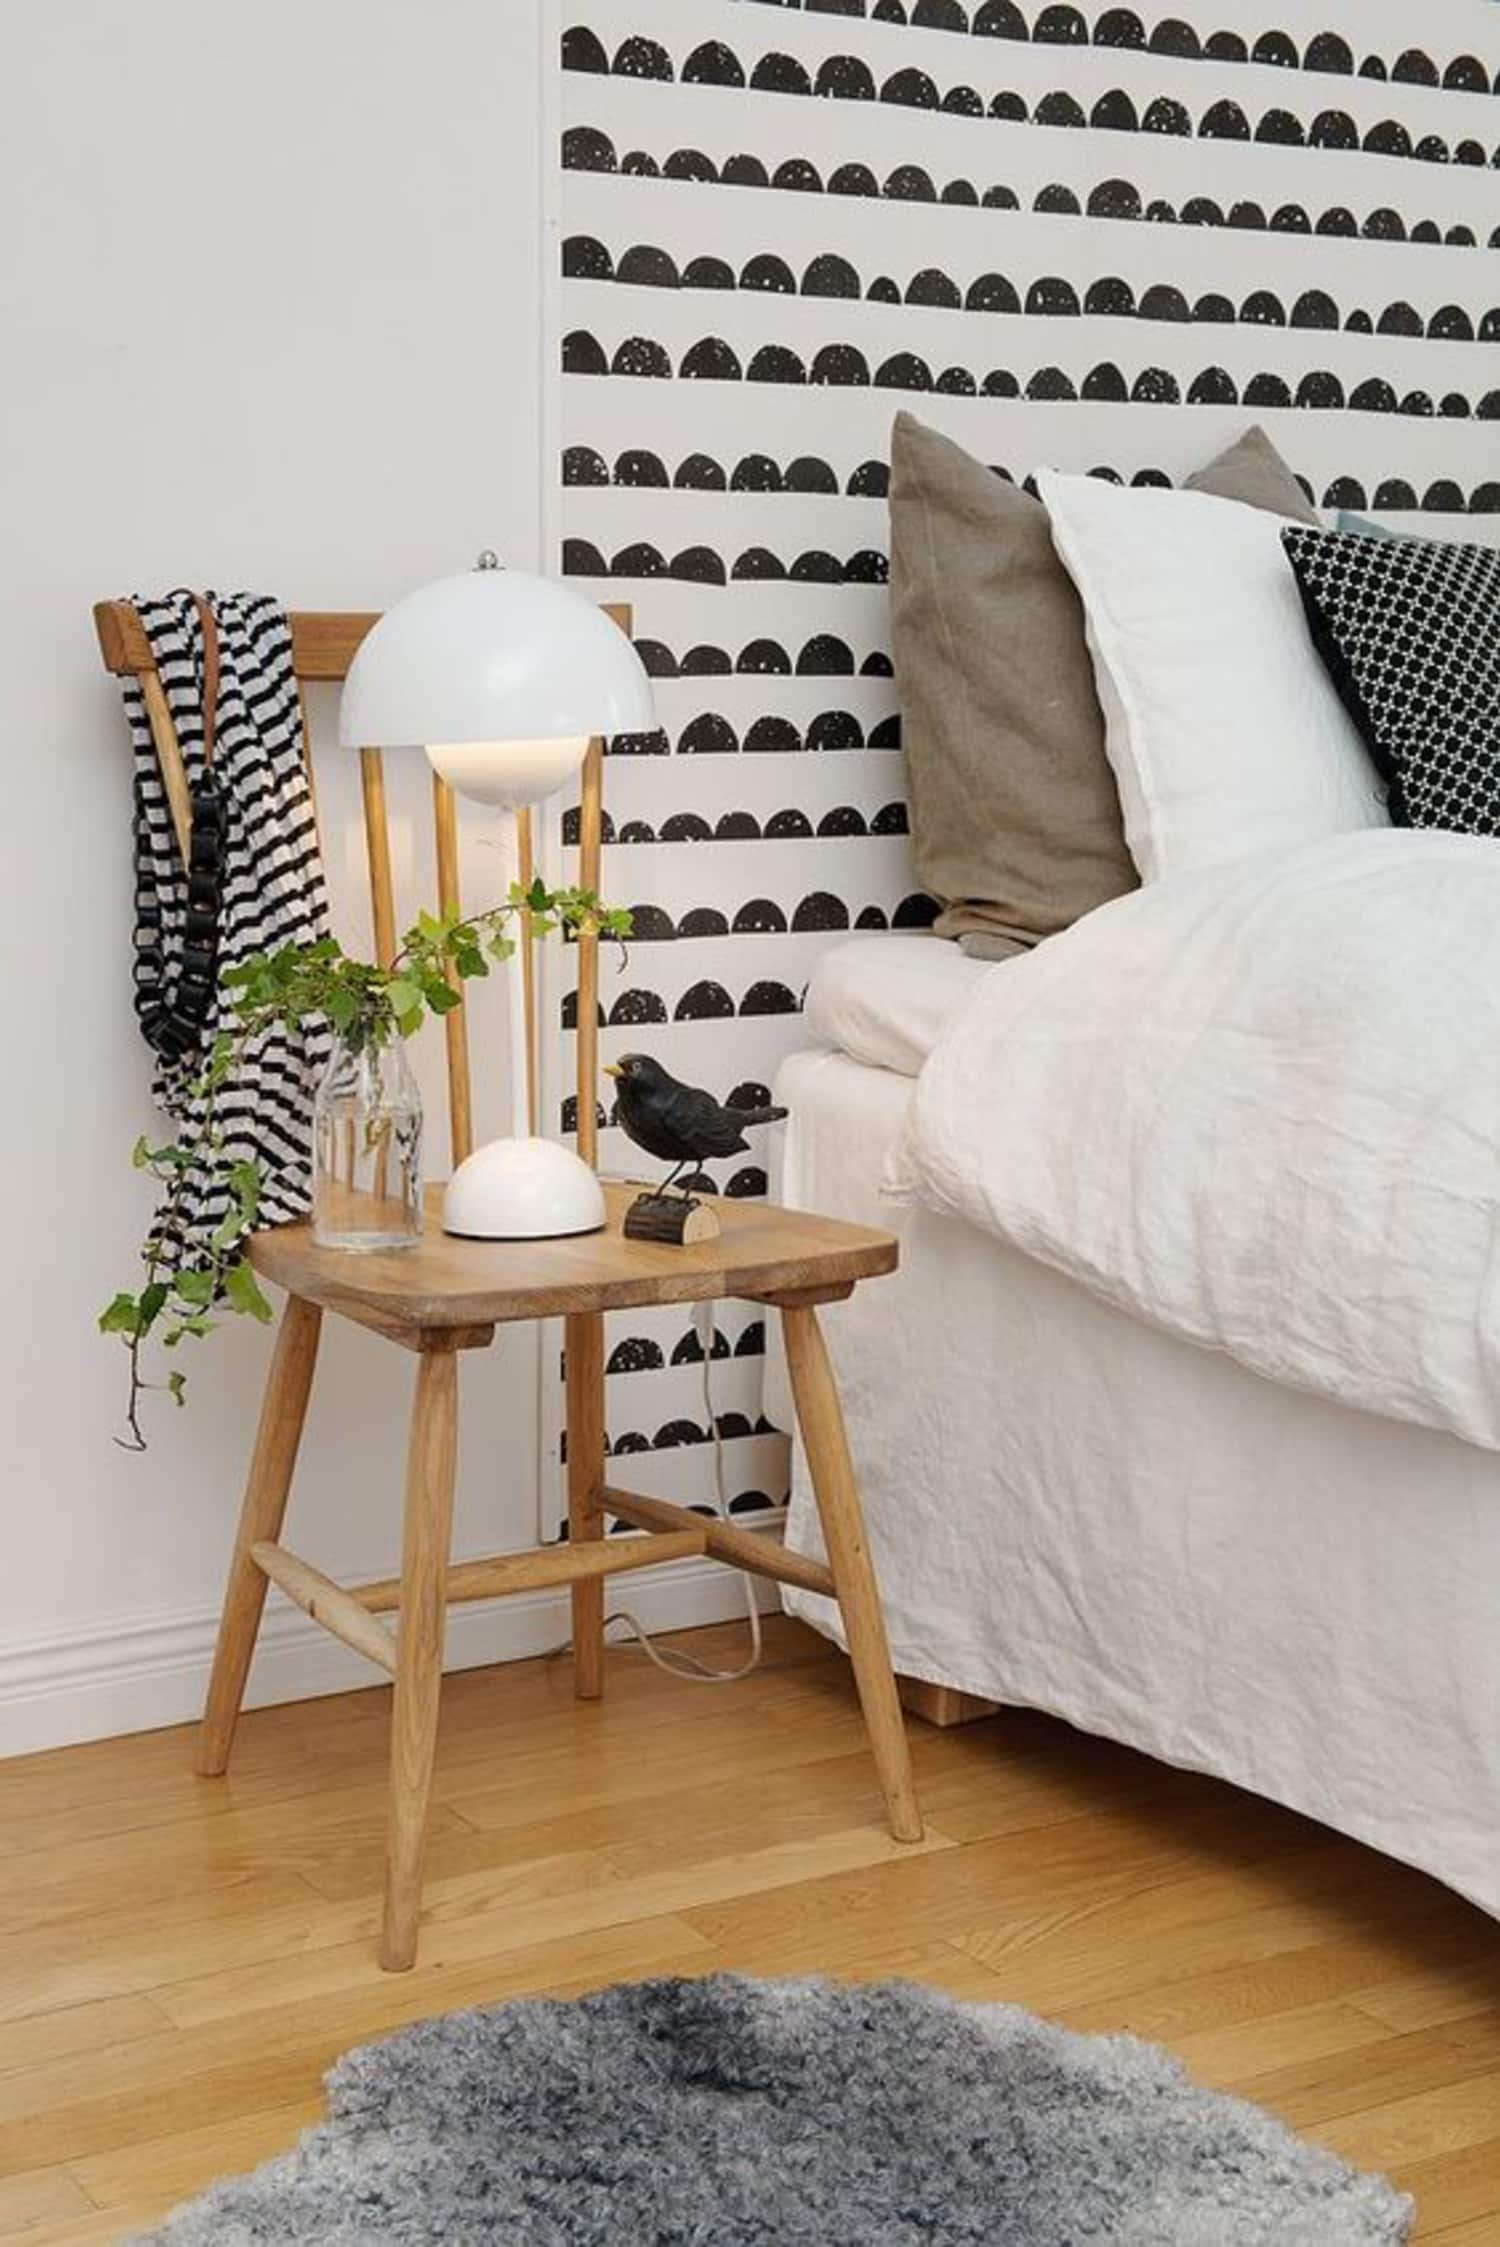 Step Up Your Bedroom Style: Doable DIY Headboard Ideas